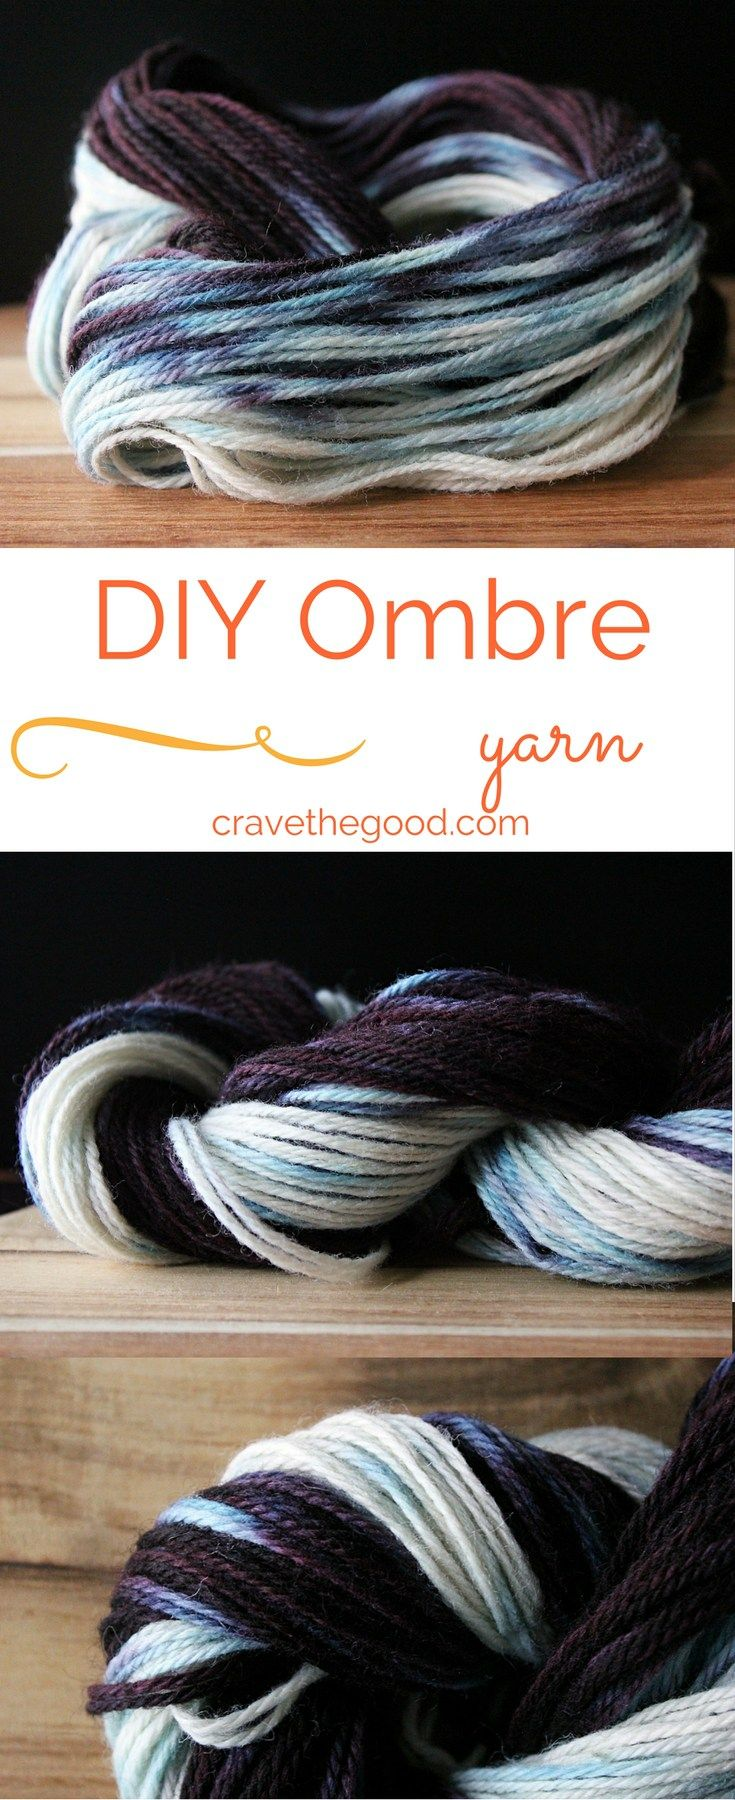 How To Dye Ombre/Gradient Yarn With Food Colouring. This easy tutorial walks you through the steps to create your own ombre yarn | cravethegood.com